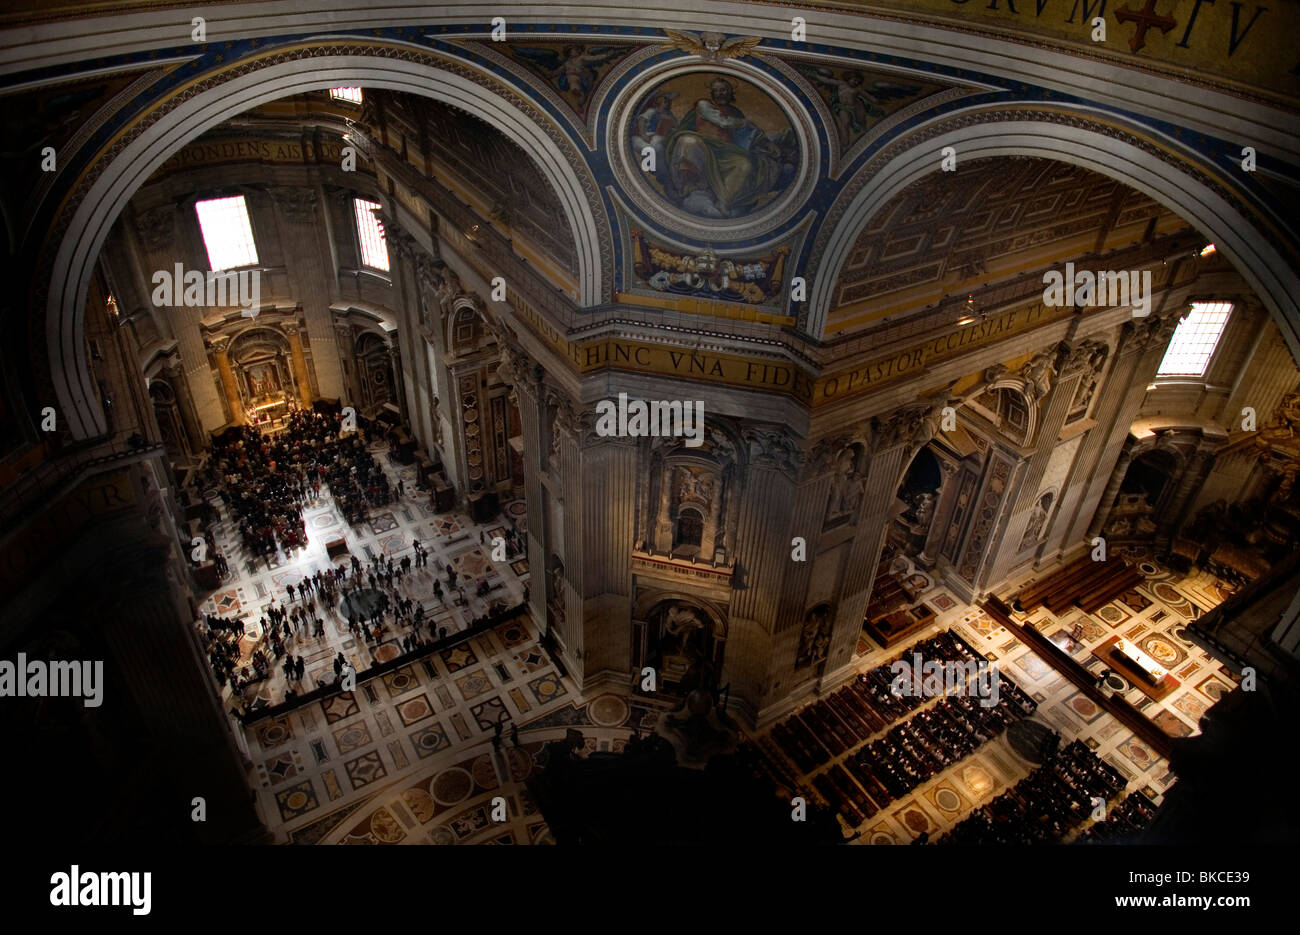 A view of St. Peter's Basilica in Vatican City, Rome, Italy, March 9, 2008. Photo/Chico Sanchez Stock Photo